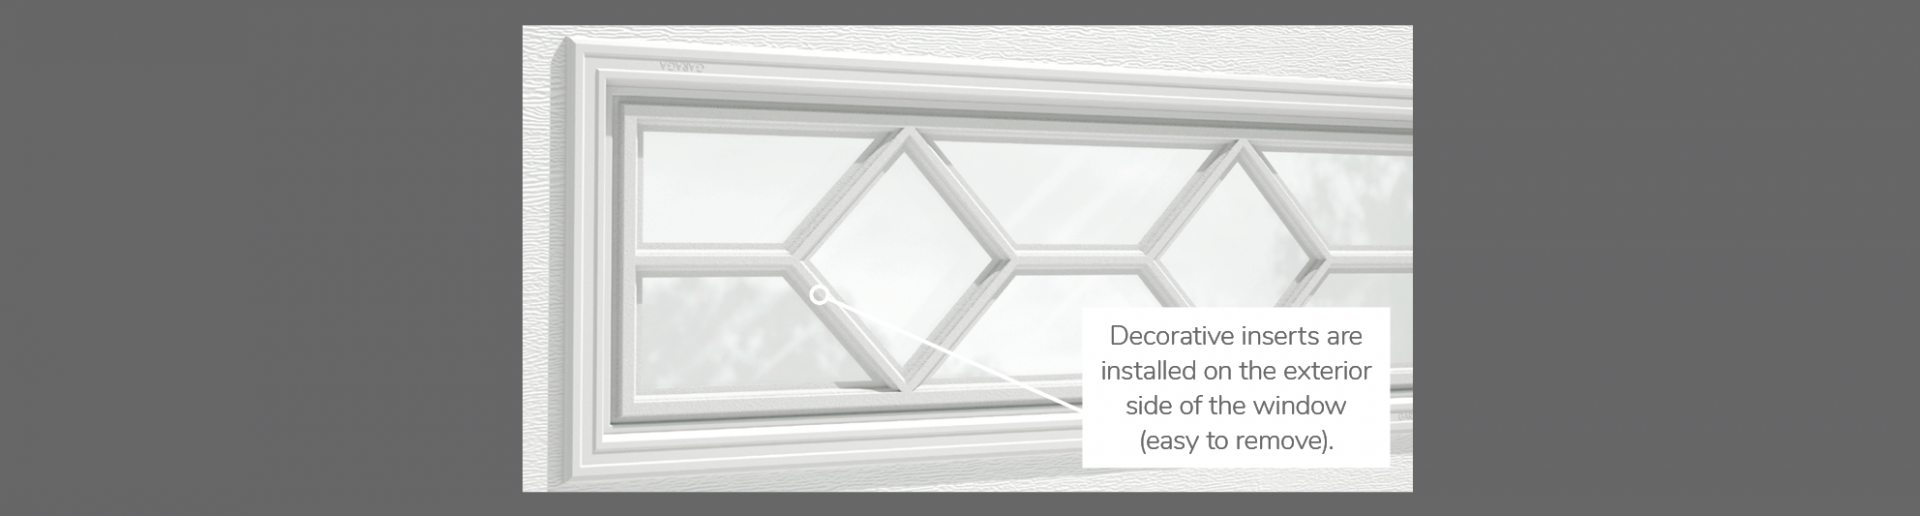 "Waterton Decorative Insert, 21"" x 13"" and 40"" x 13"", available for door R-16, R-12"